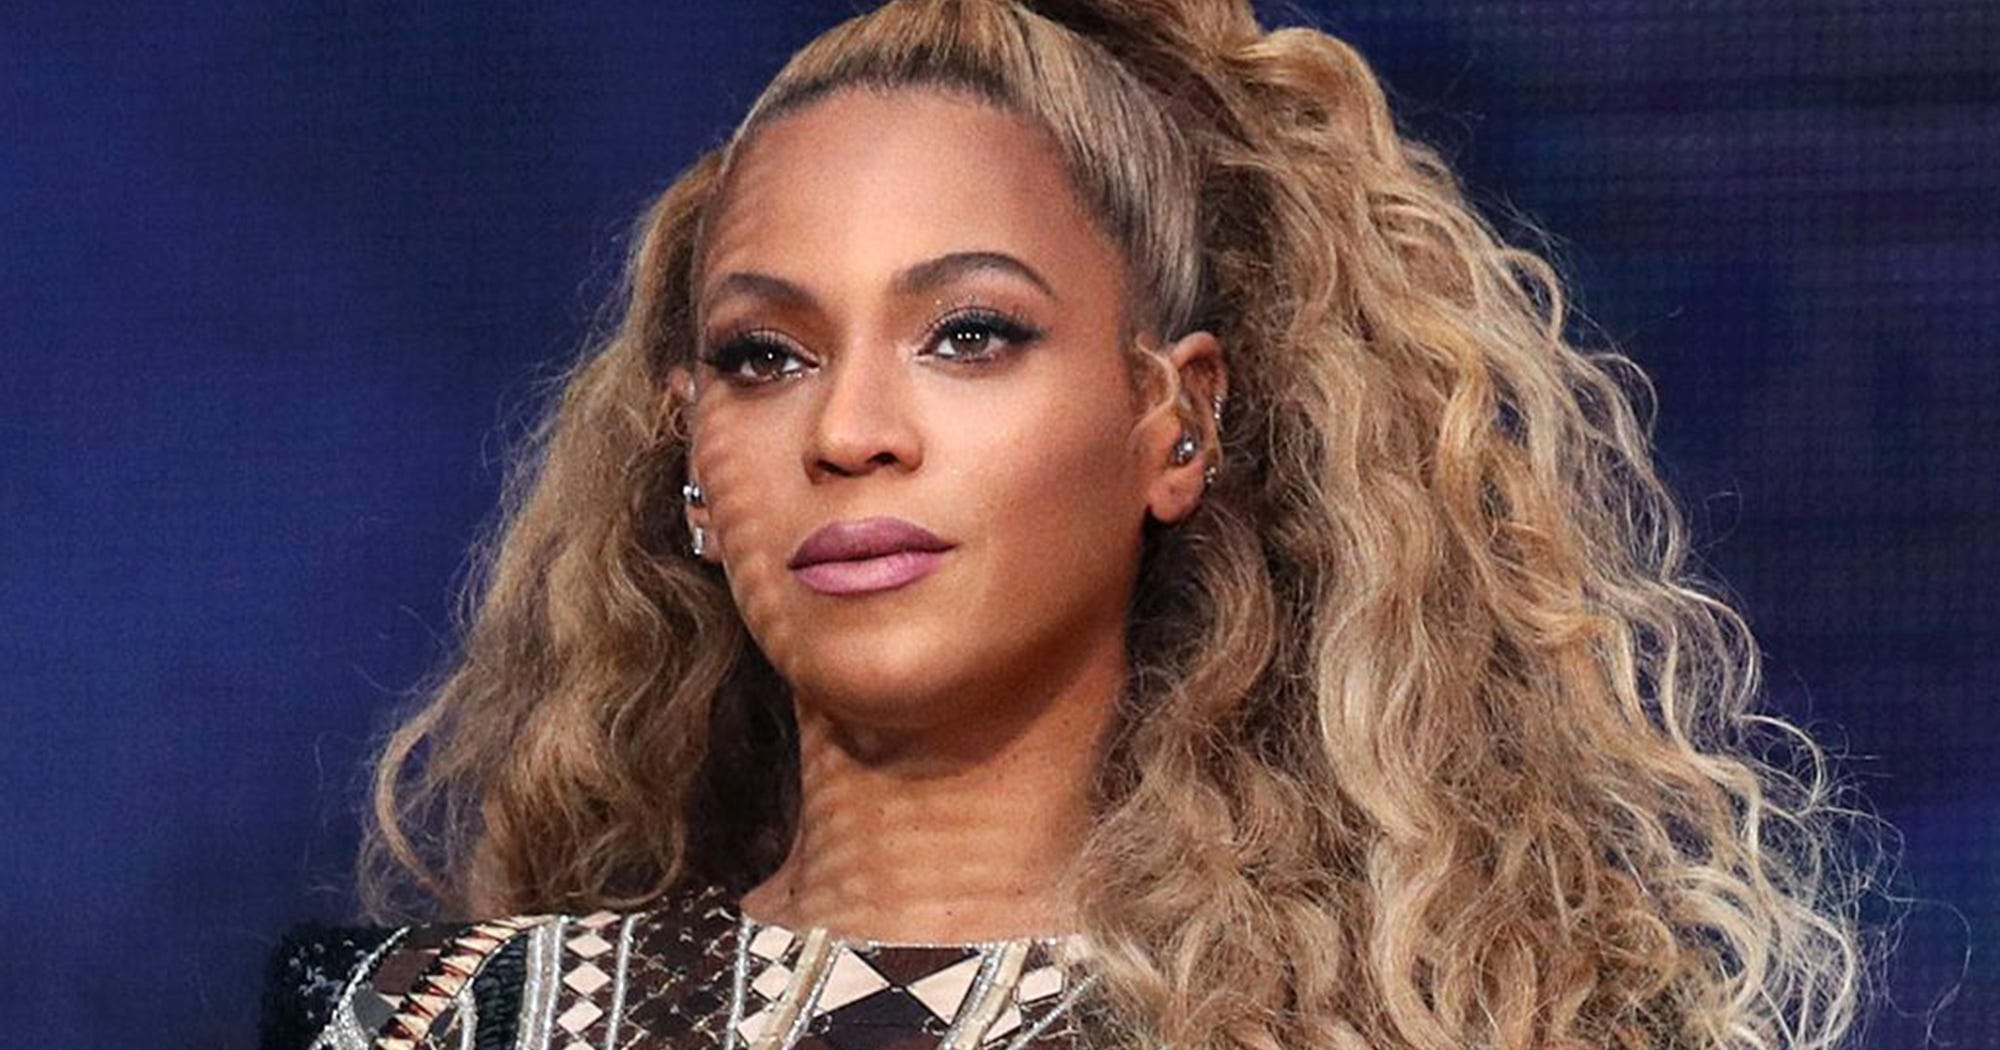 This Is Why Fans Think Beyoncé Might Be Pregnant